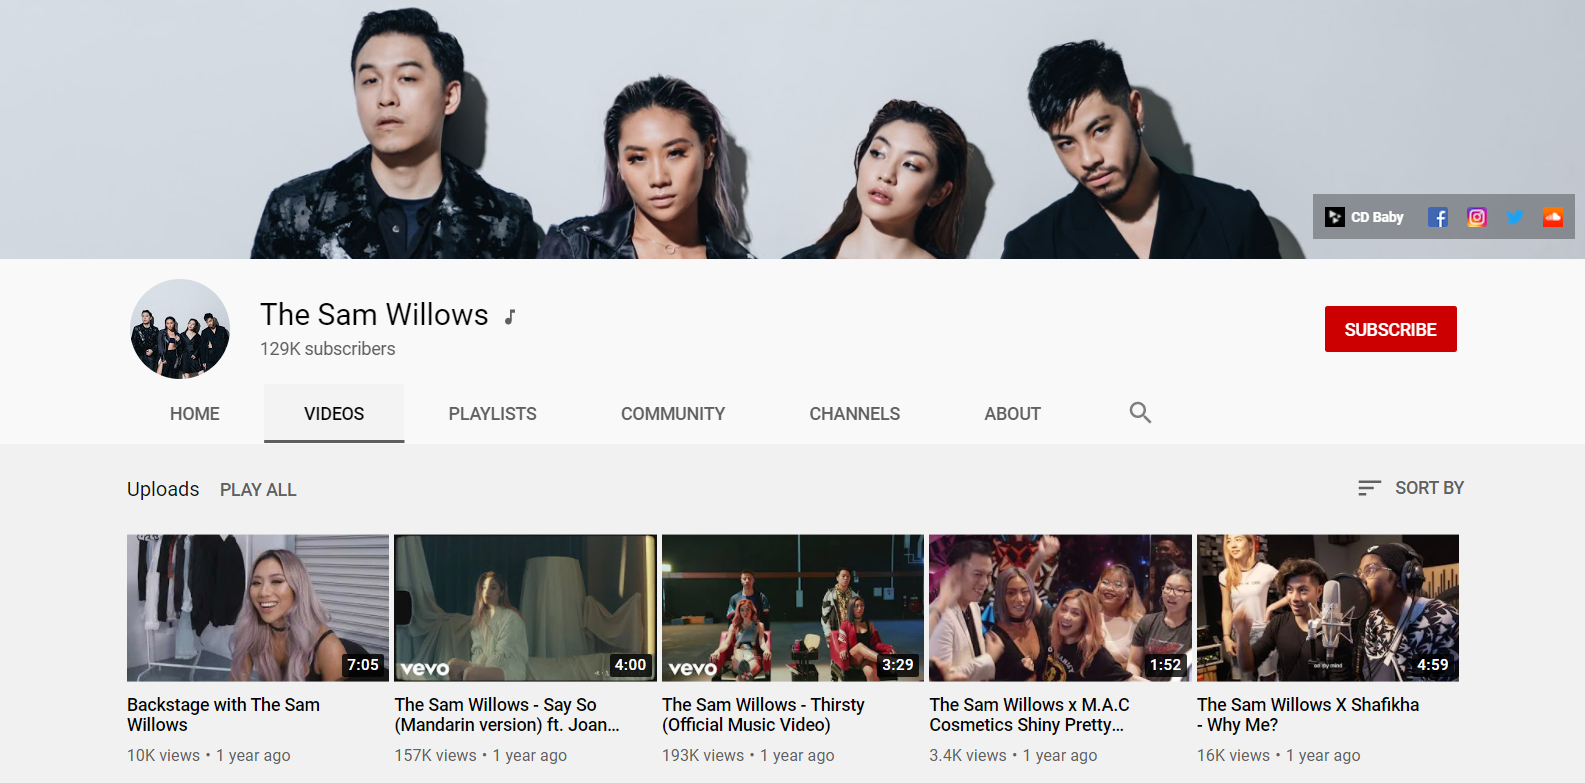 Sam Willows YouTube Channel Page